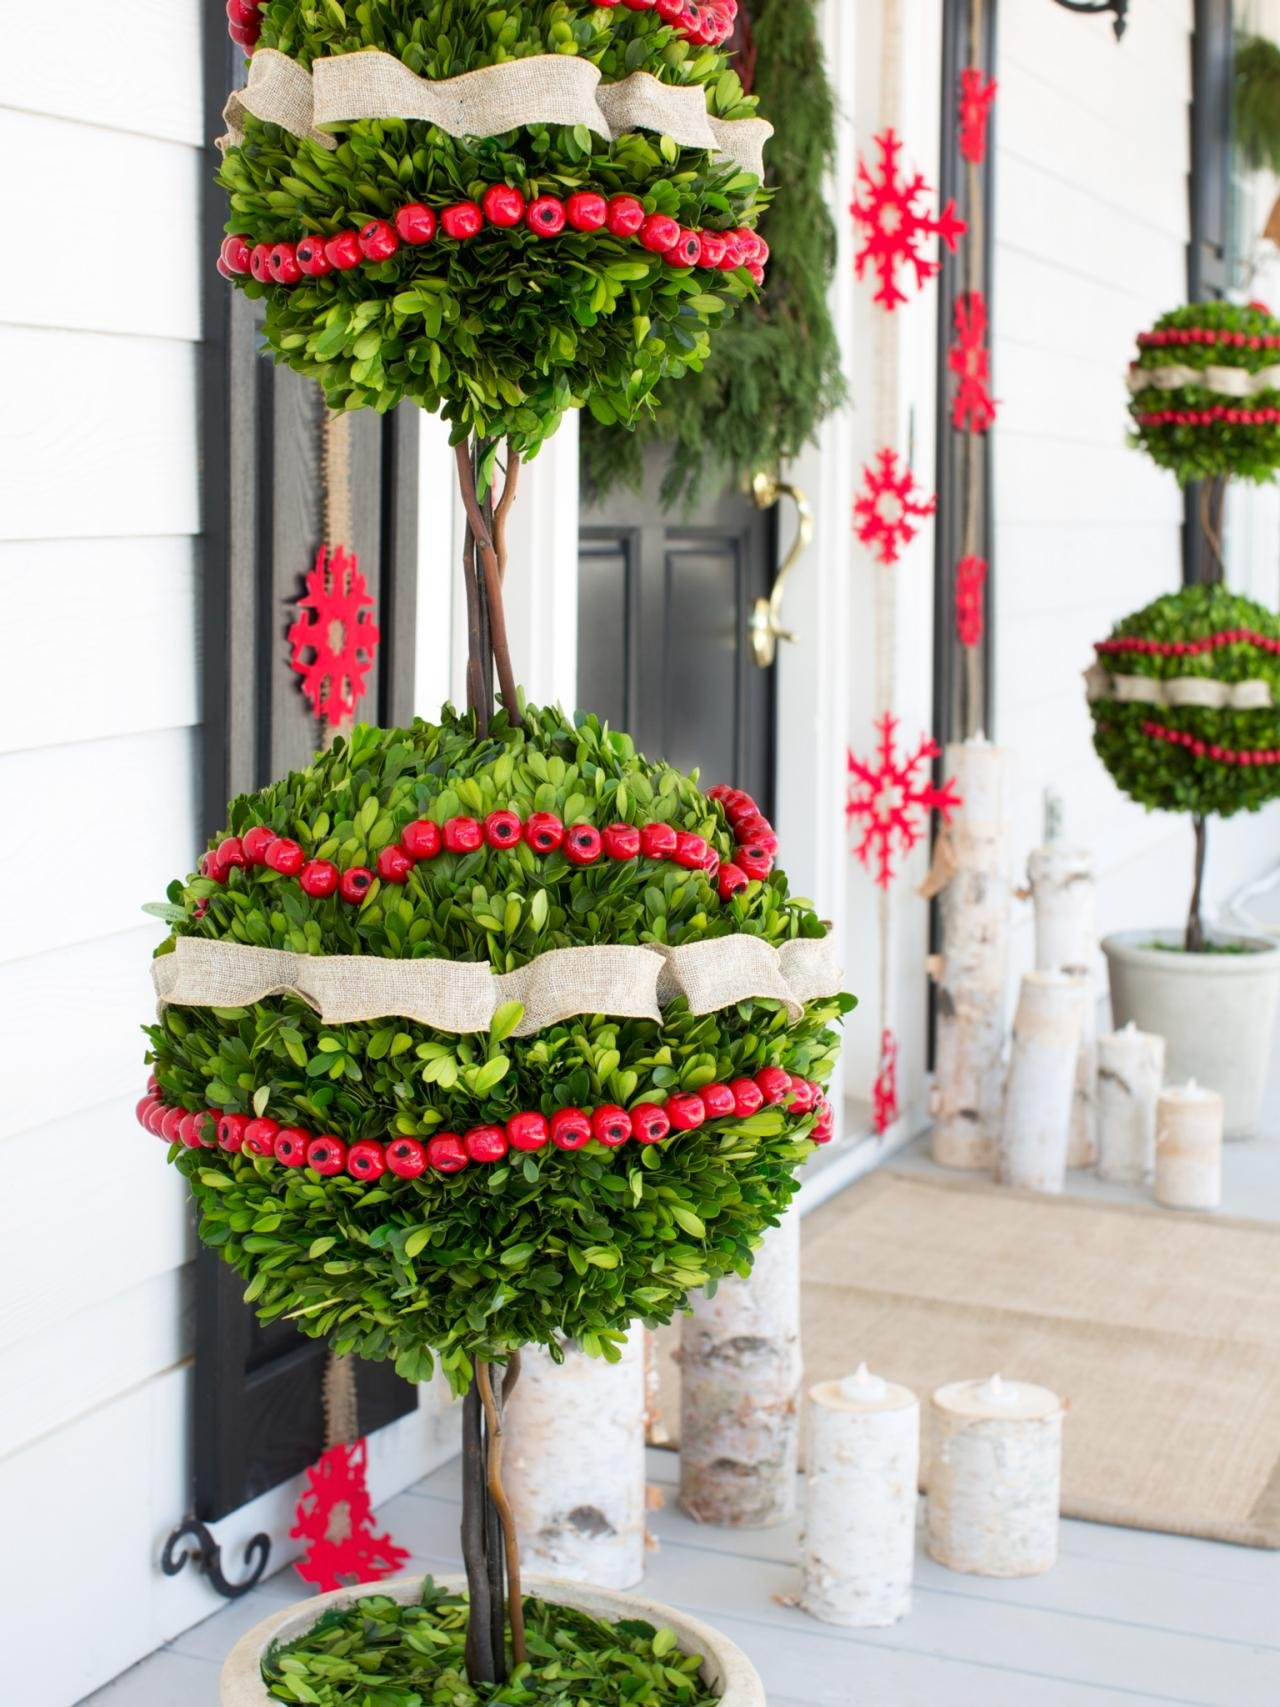 Exclusive Outdoor Christmas Decoration Inspirations. Kmart Christmas Decorations Outdoor. Commercial Christmas Decorations Belfast. Home Depot Christmas Decorations. House Of Lloyd Christmas Around The World Decorations. Best Store For Christmas Decorations. Christmas Decorations Disney World 2015. Christmas Ornaments For Sale Canada. Easy To Make Christmas Decorations At Home